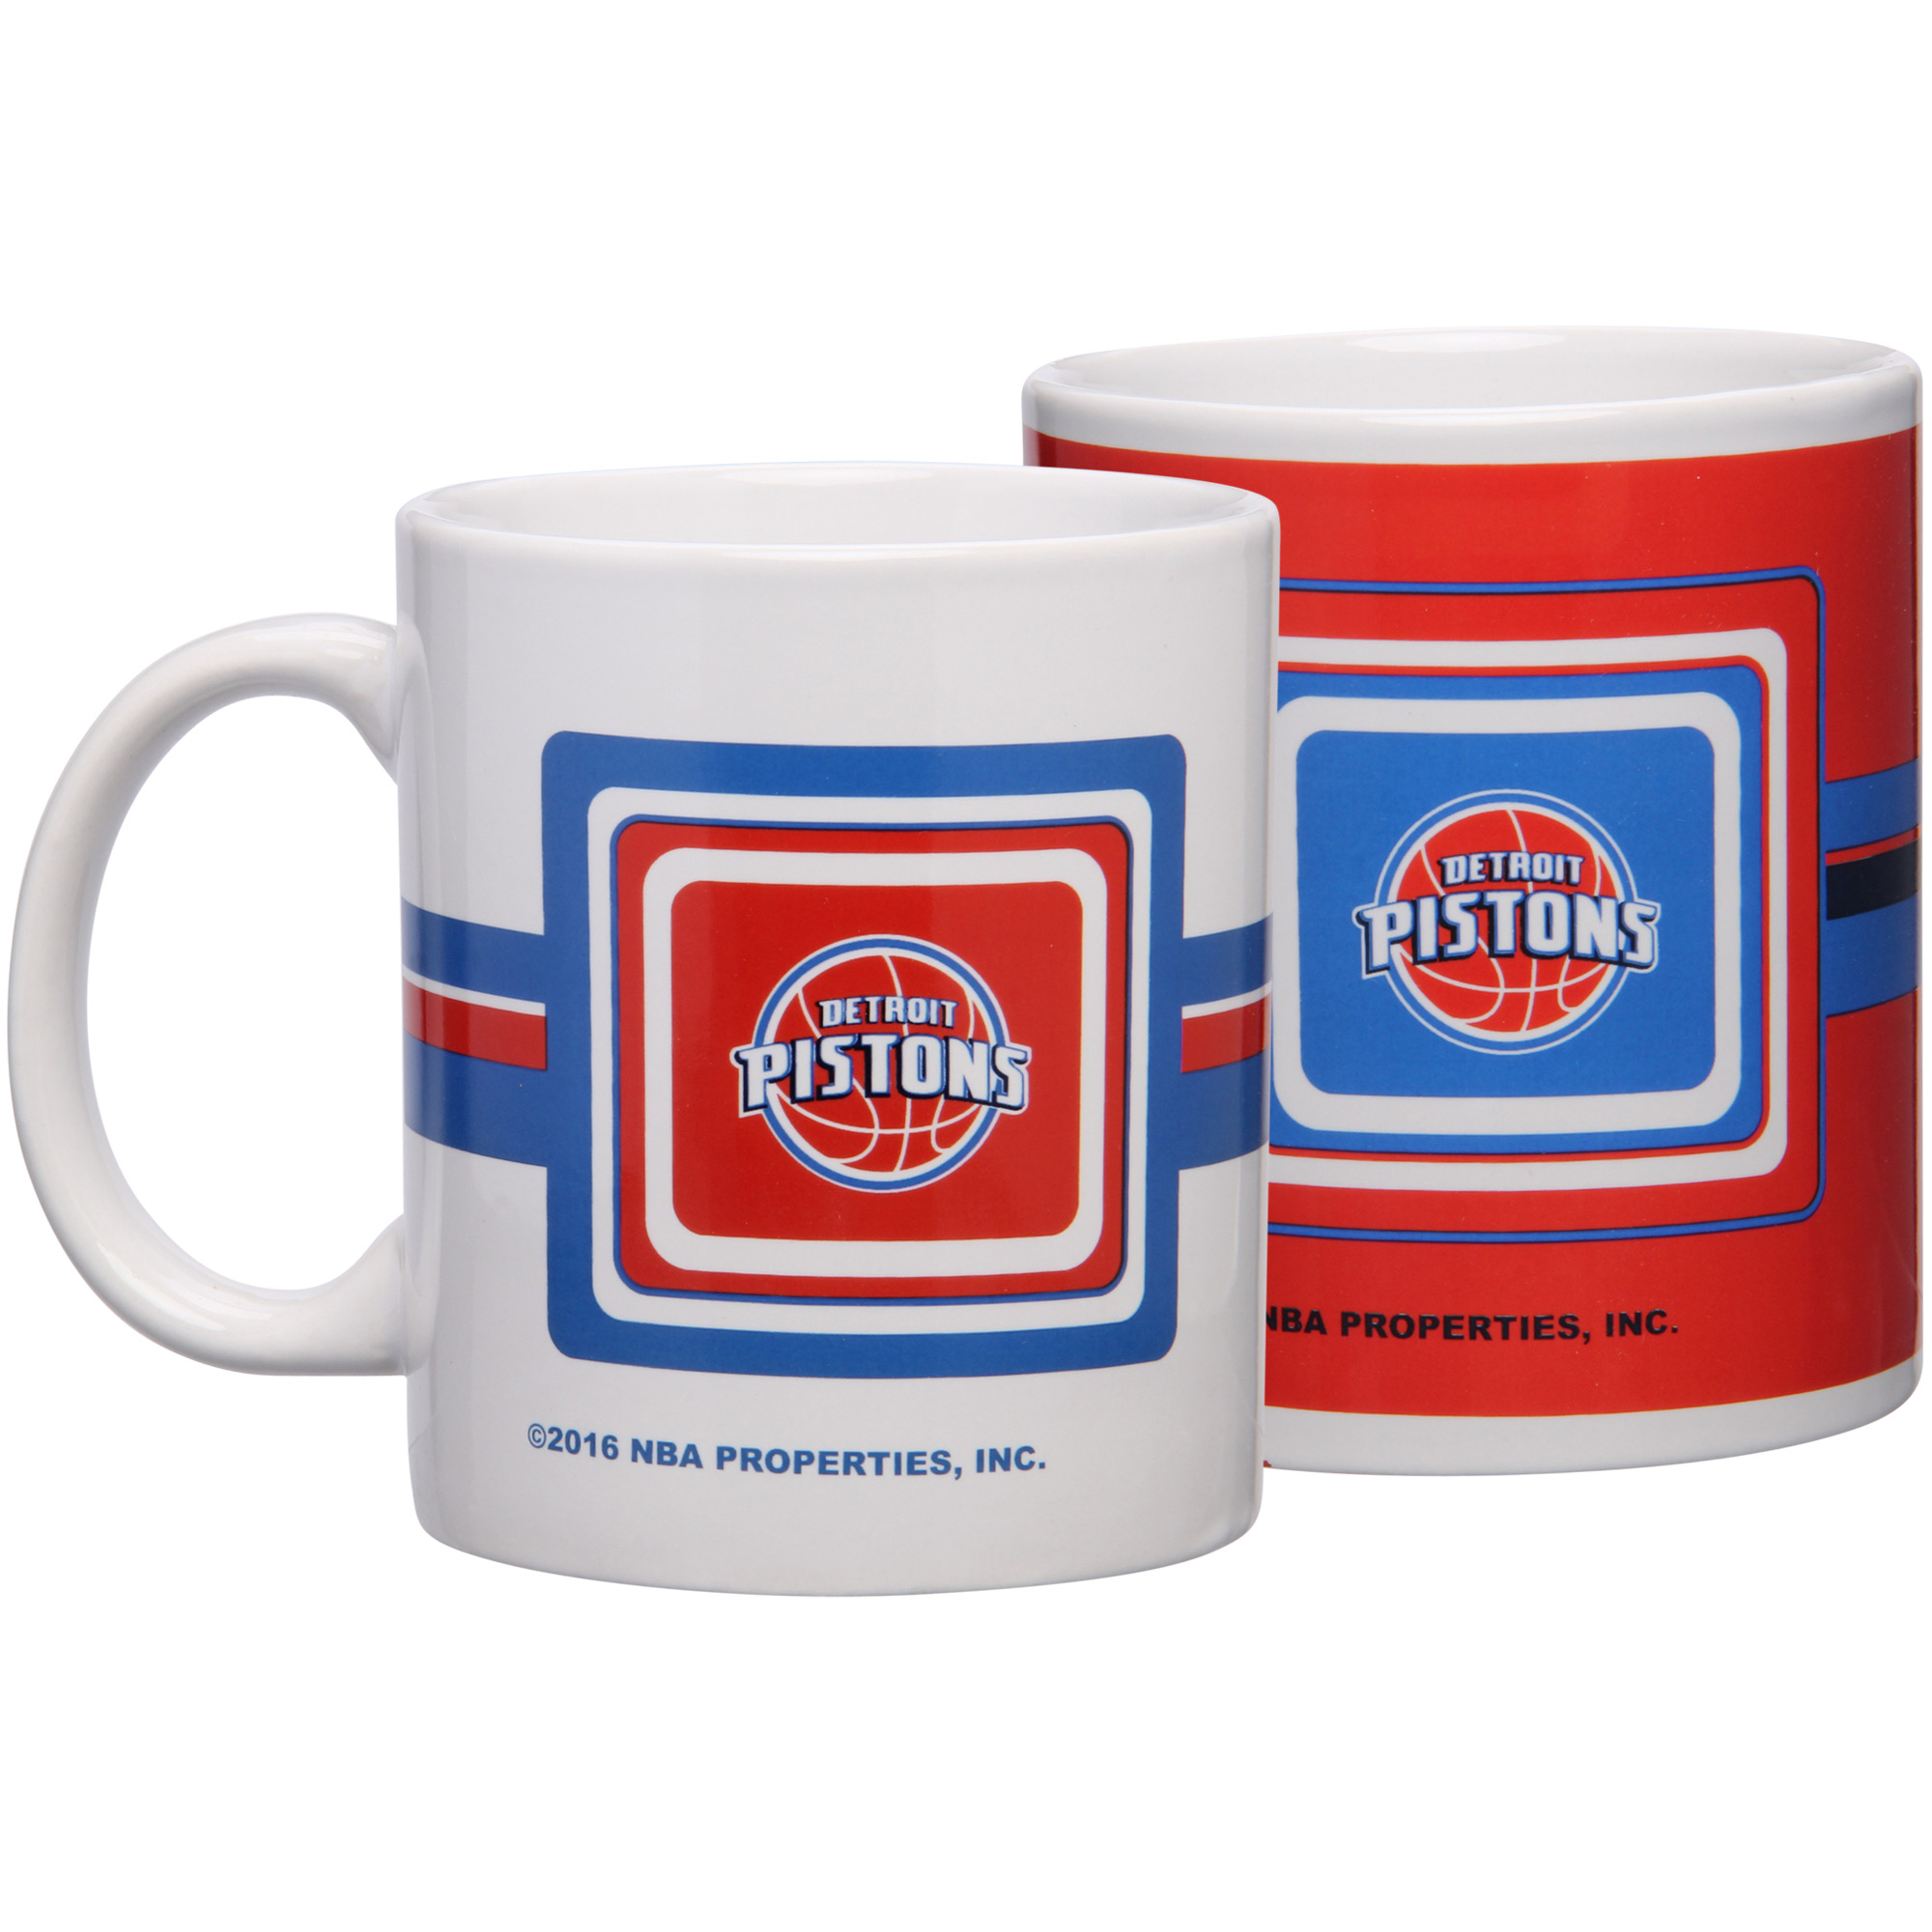 Detroit Pistons 11oz. Two-Pack Mug Set - No Size